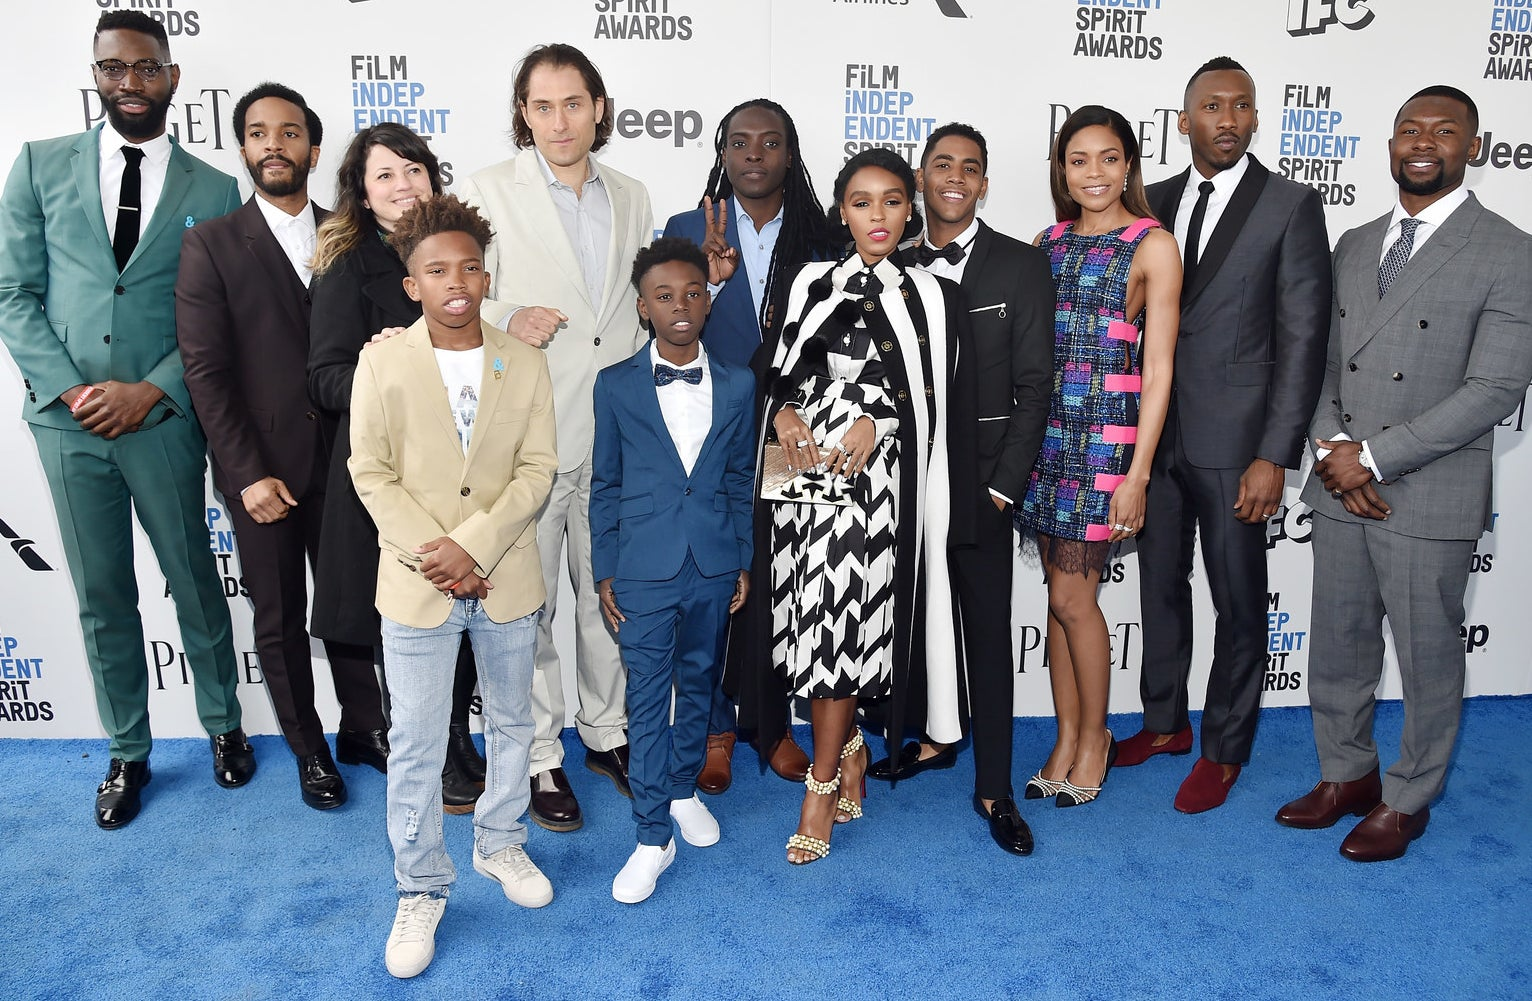 The Moonlight cast and crew at the Film Independent Spirit Awards